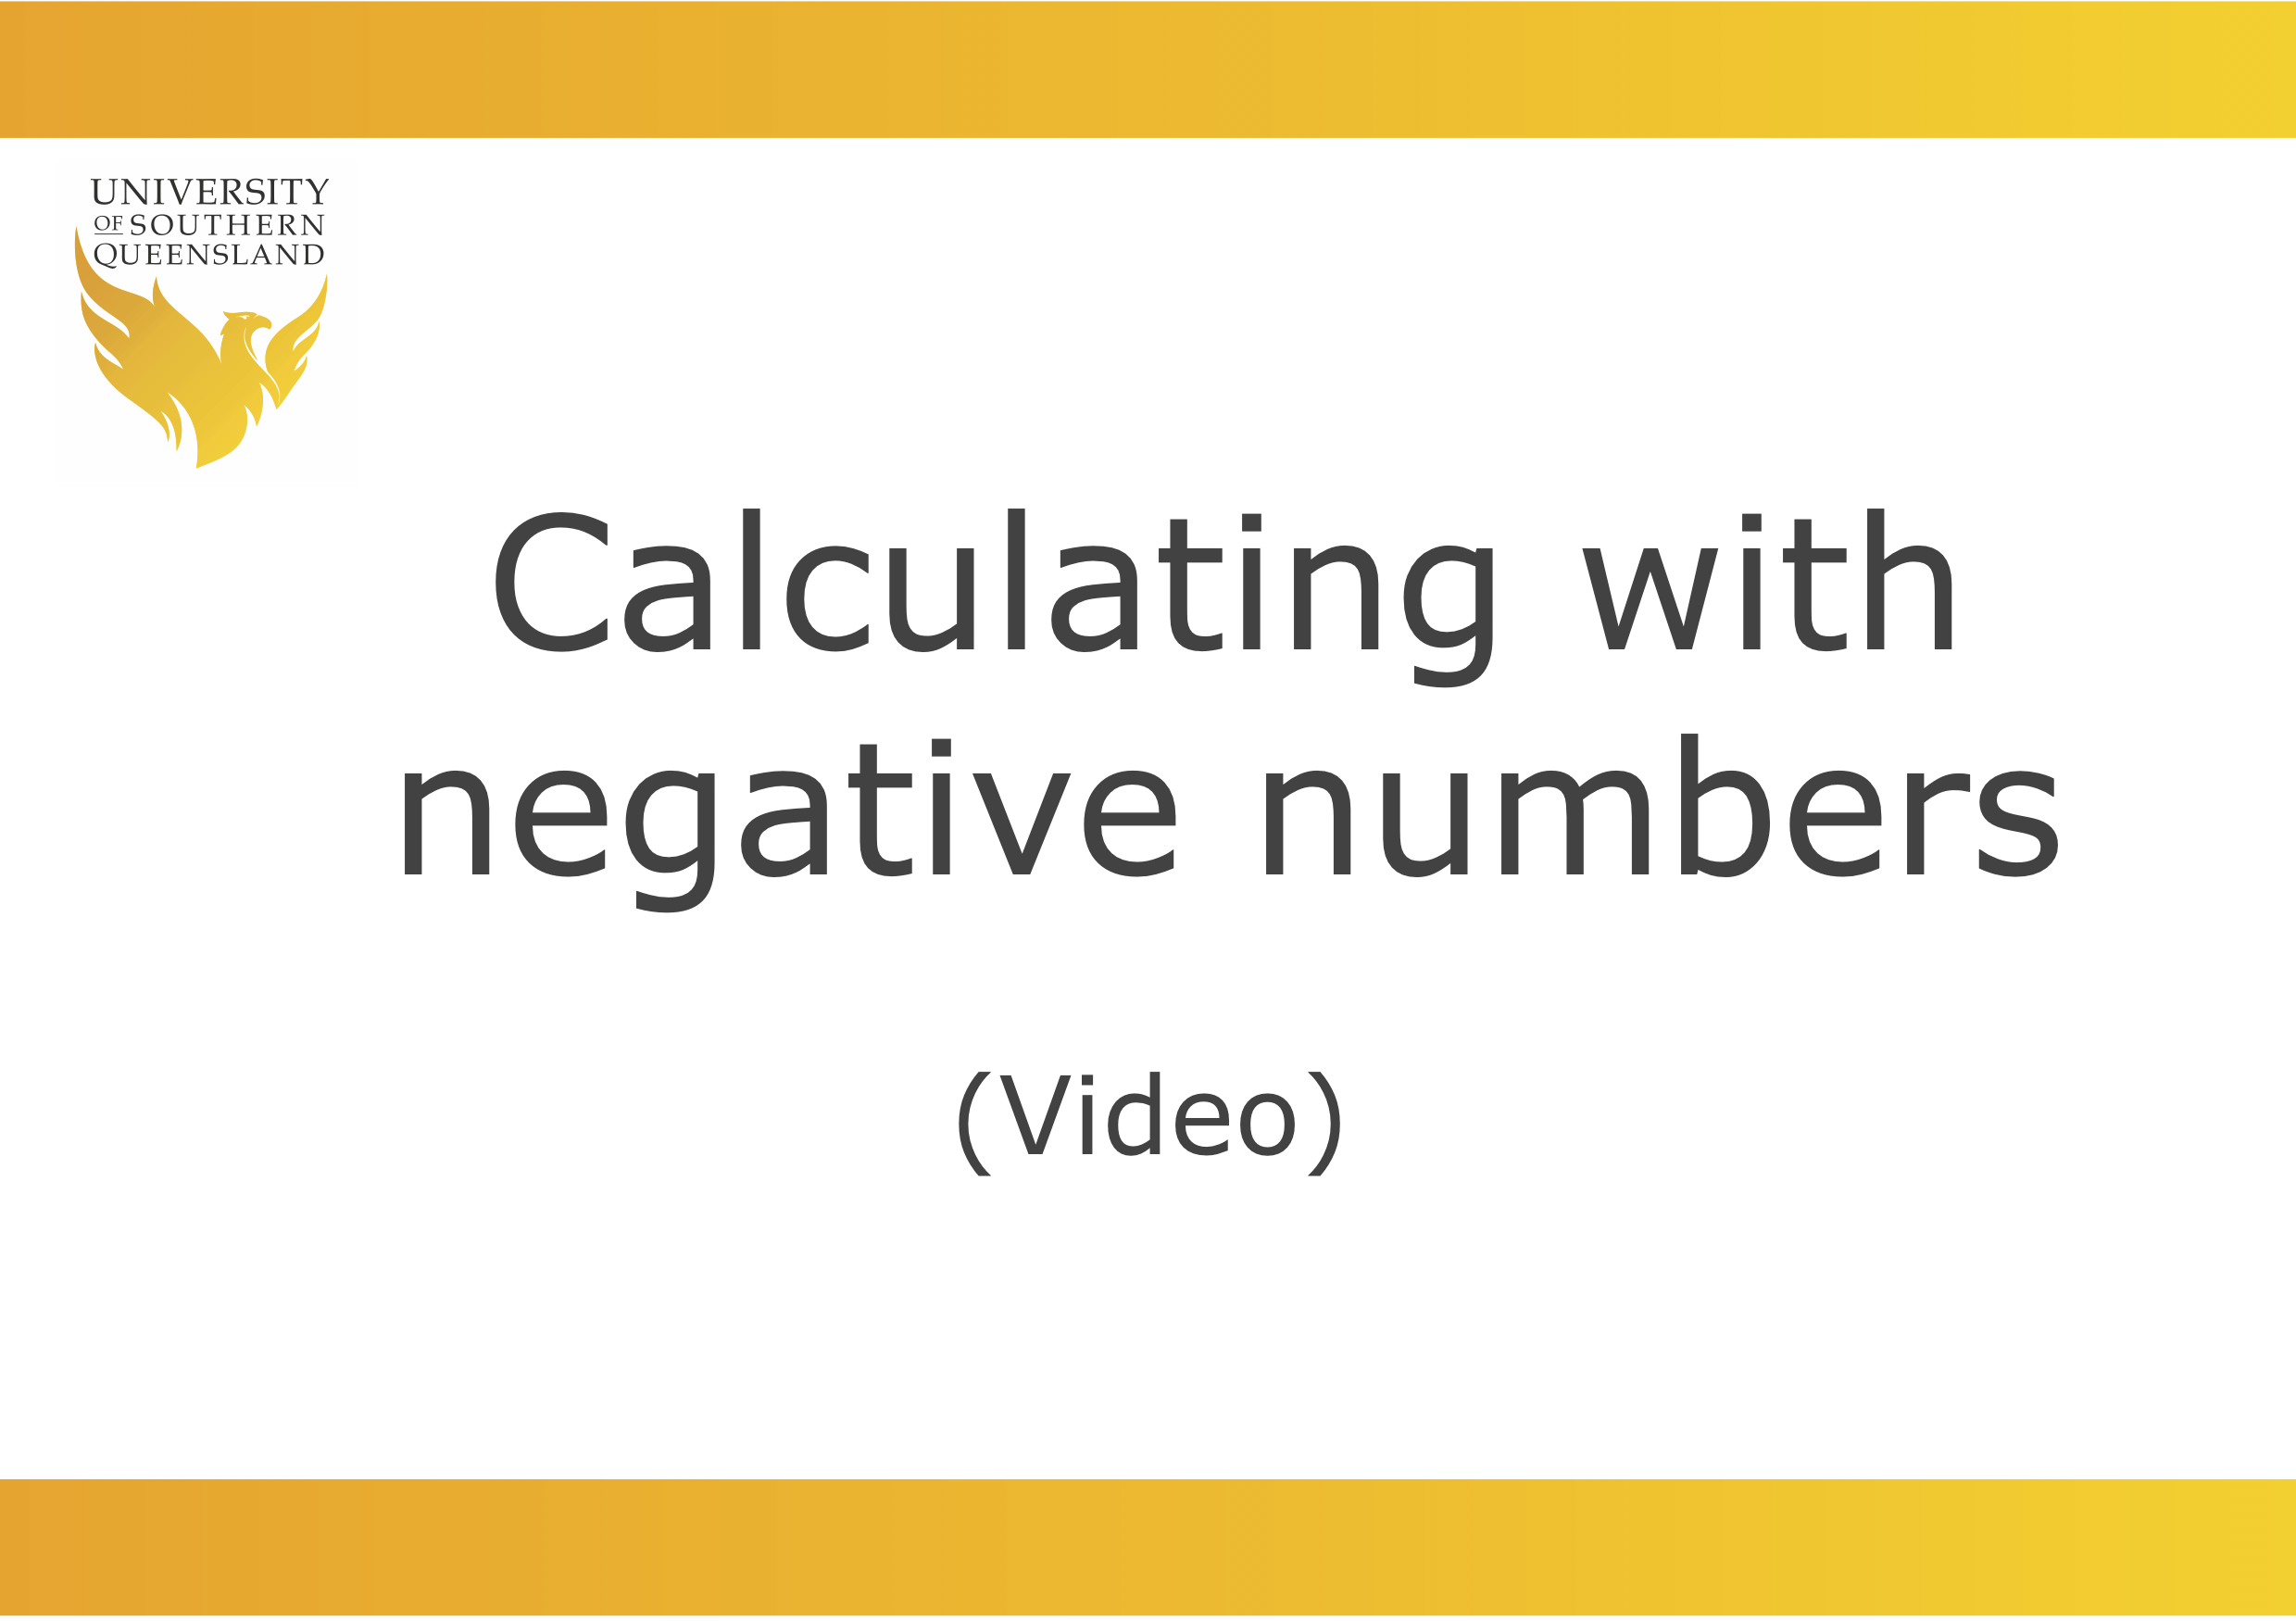 Calculating with negative numbers